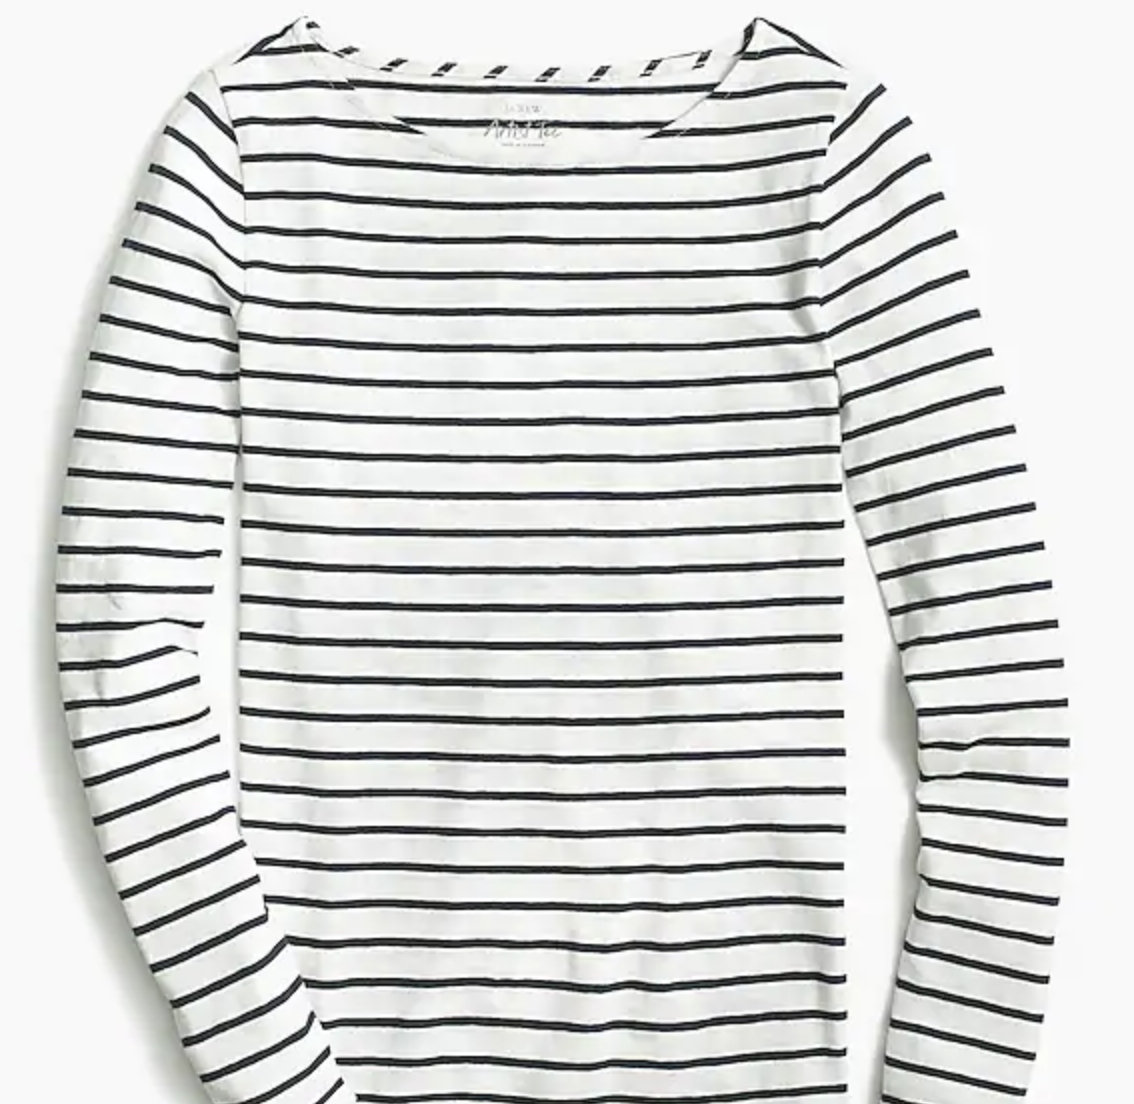 I love the neckline of this artist tee. Stripes are classic.